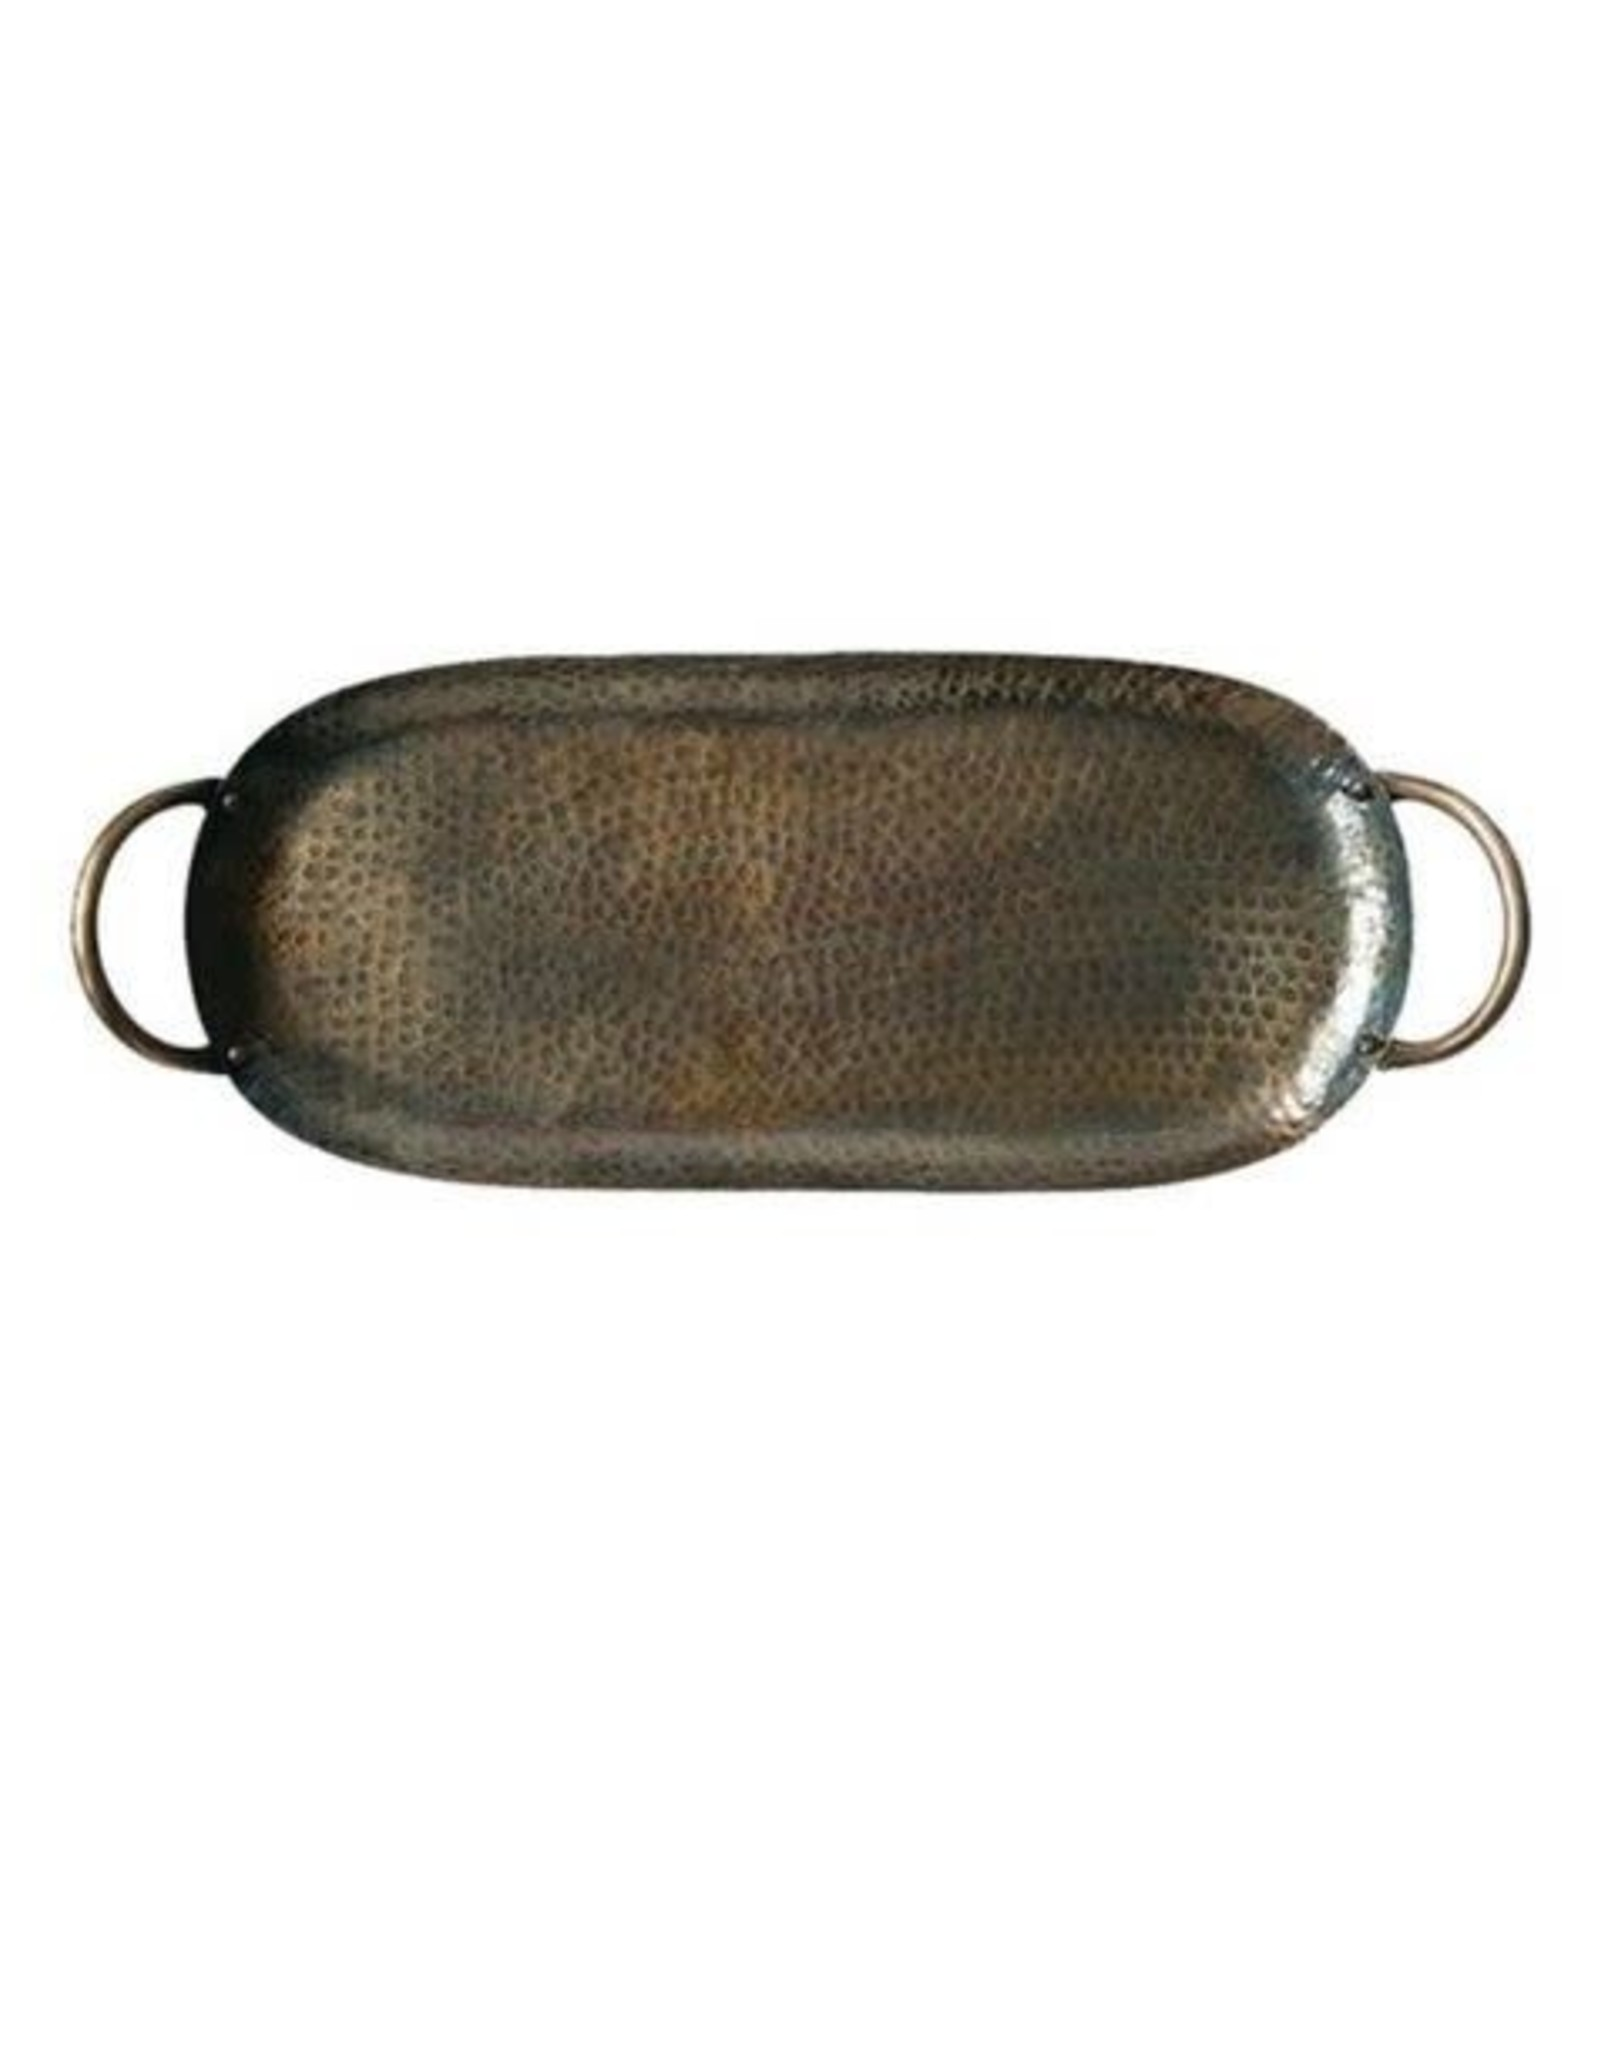 Hammered Metal Tray w/handles, Antique Brass Finish